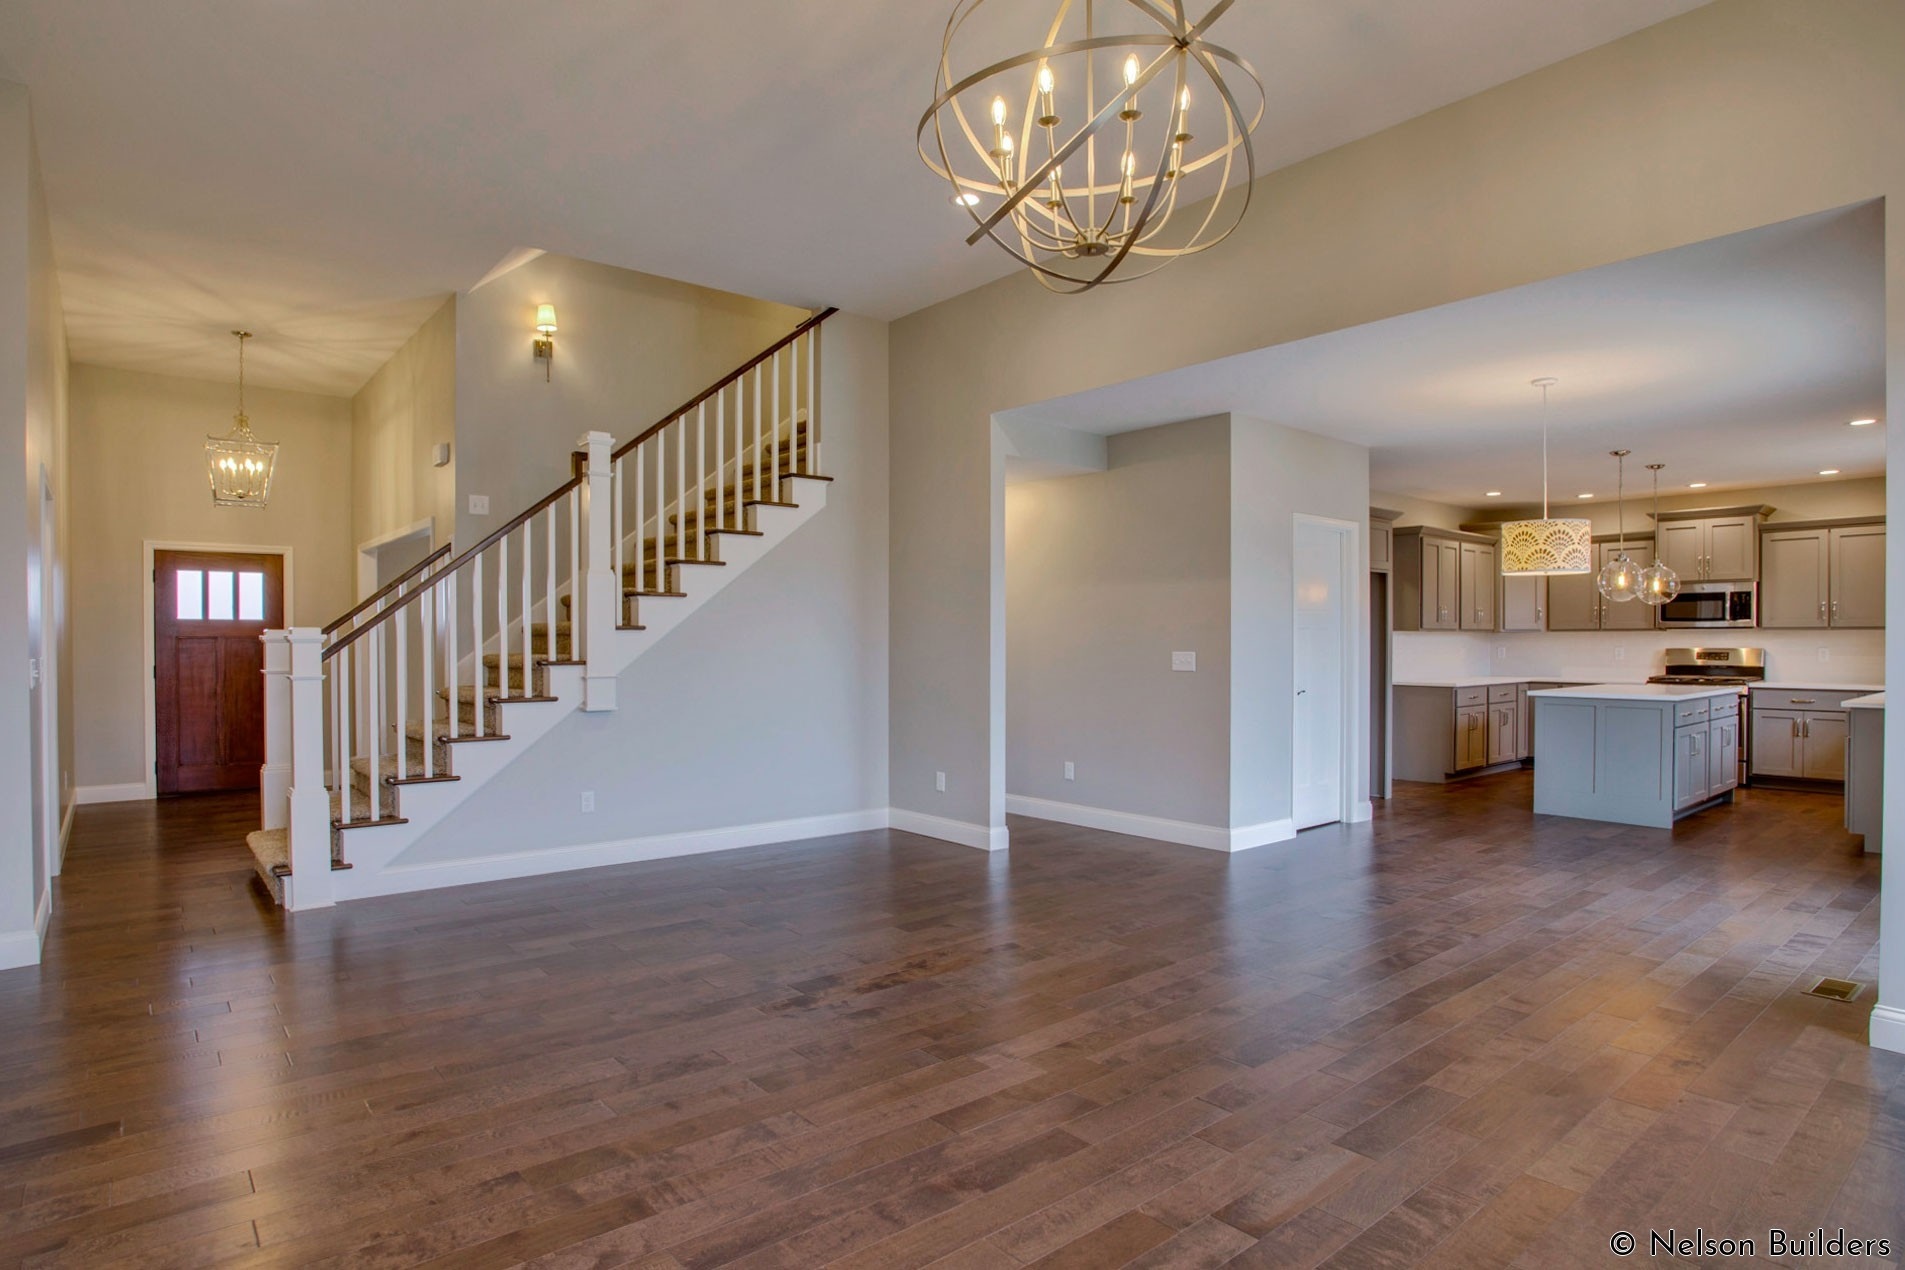 The wonderful open great room, kitchen, and foyer of this new Cherrydale plan by Nelson Builders.